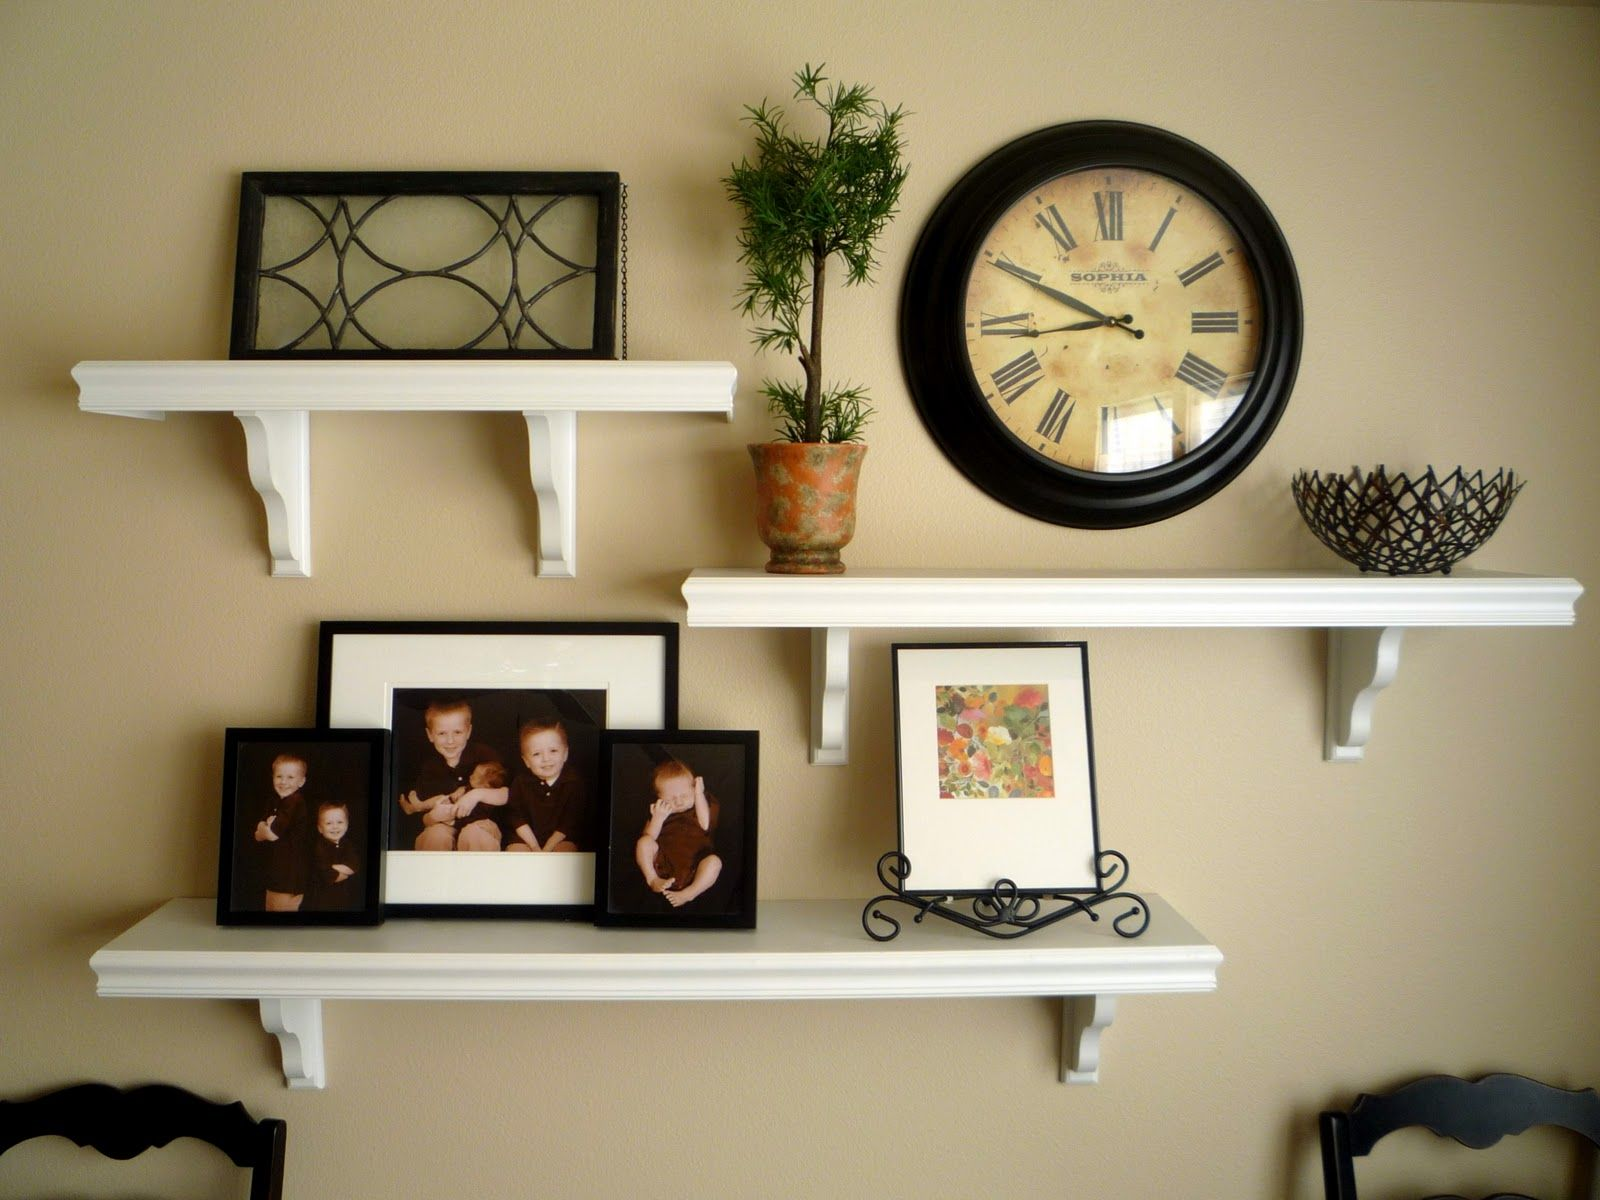 Picture And Shelves On Wall Together It All Started After Being Inspired By Thrifty Decor S